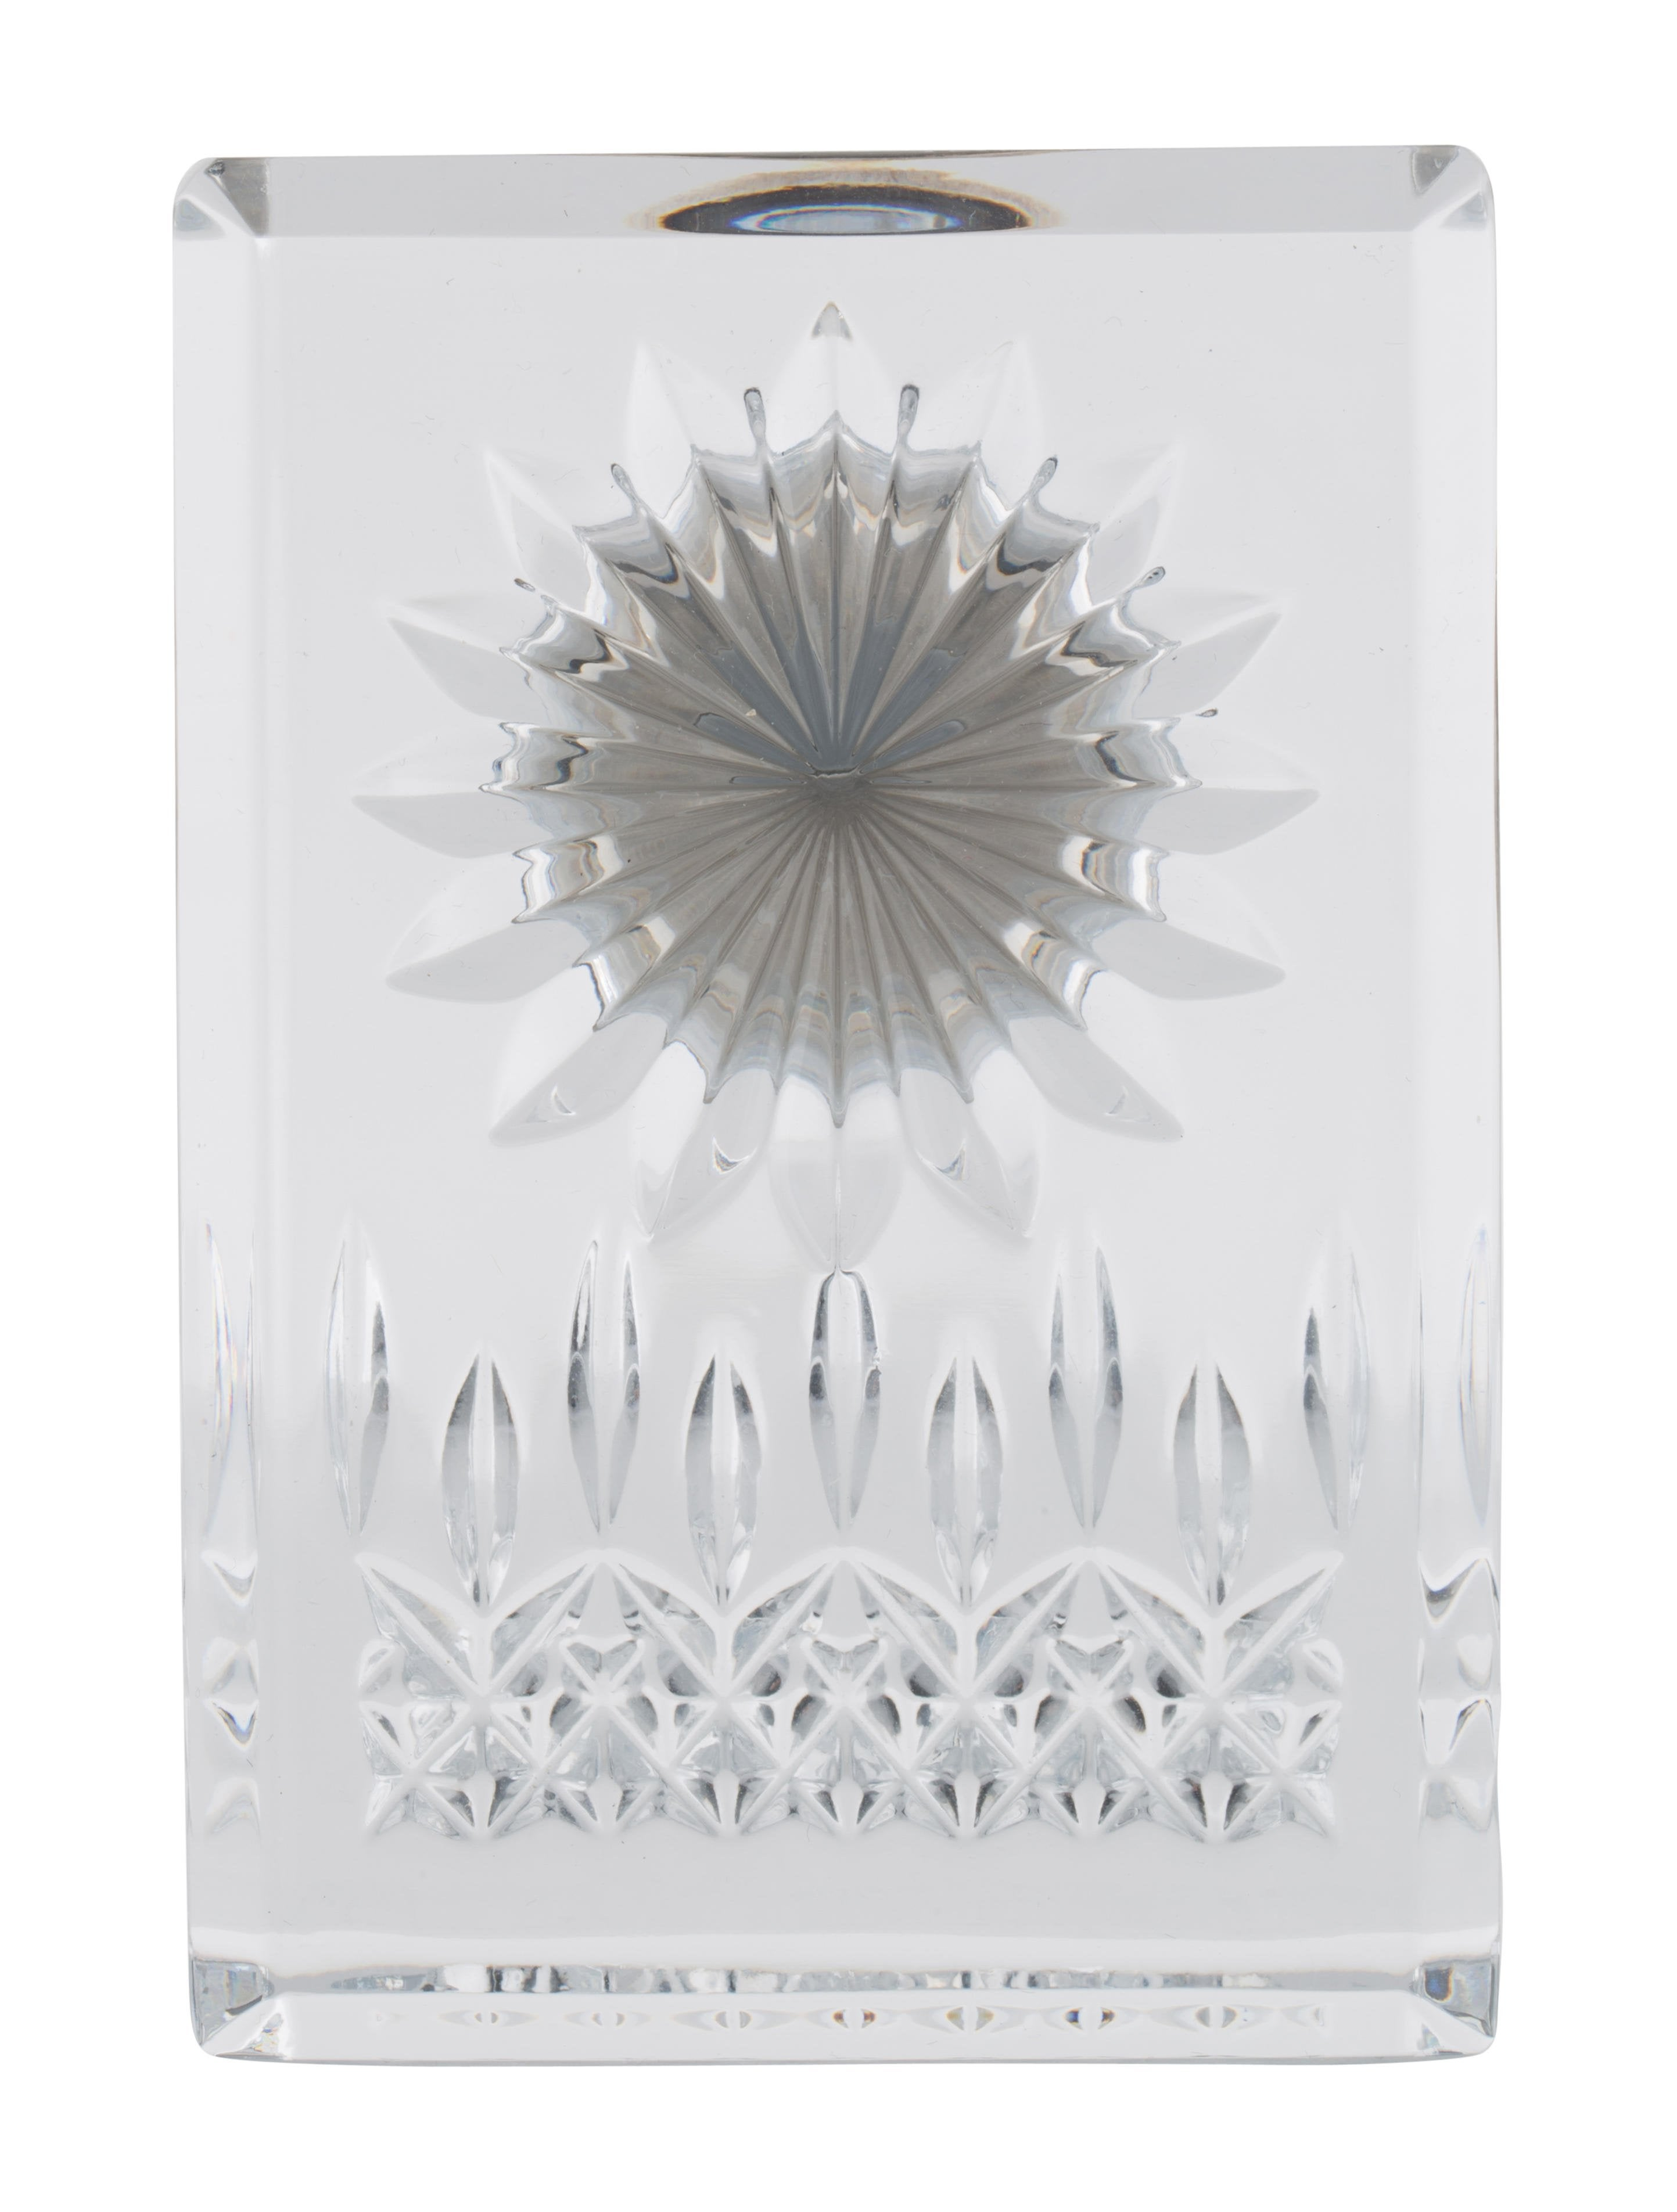 Waterford crystal lismore clock decor and accessories Crystal home decor